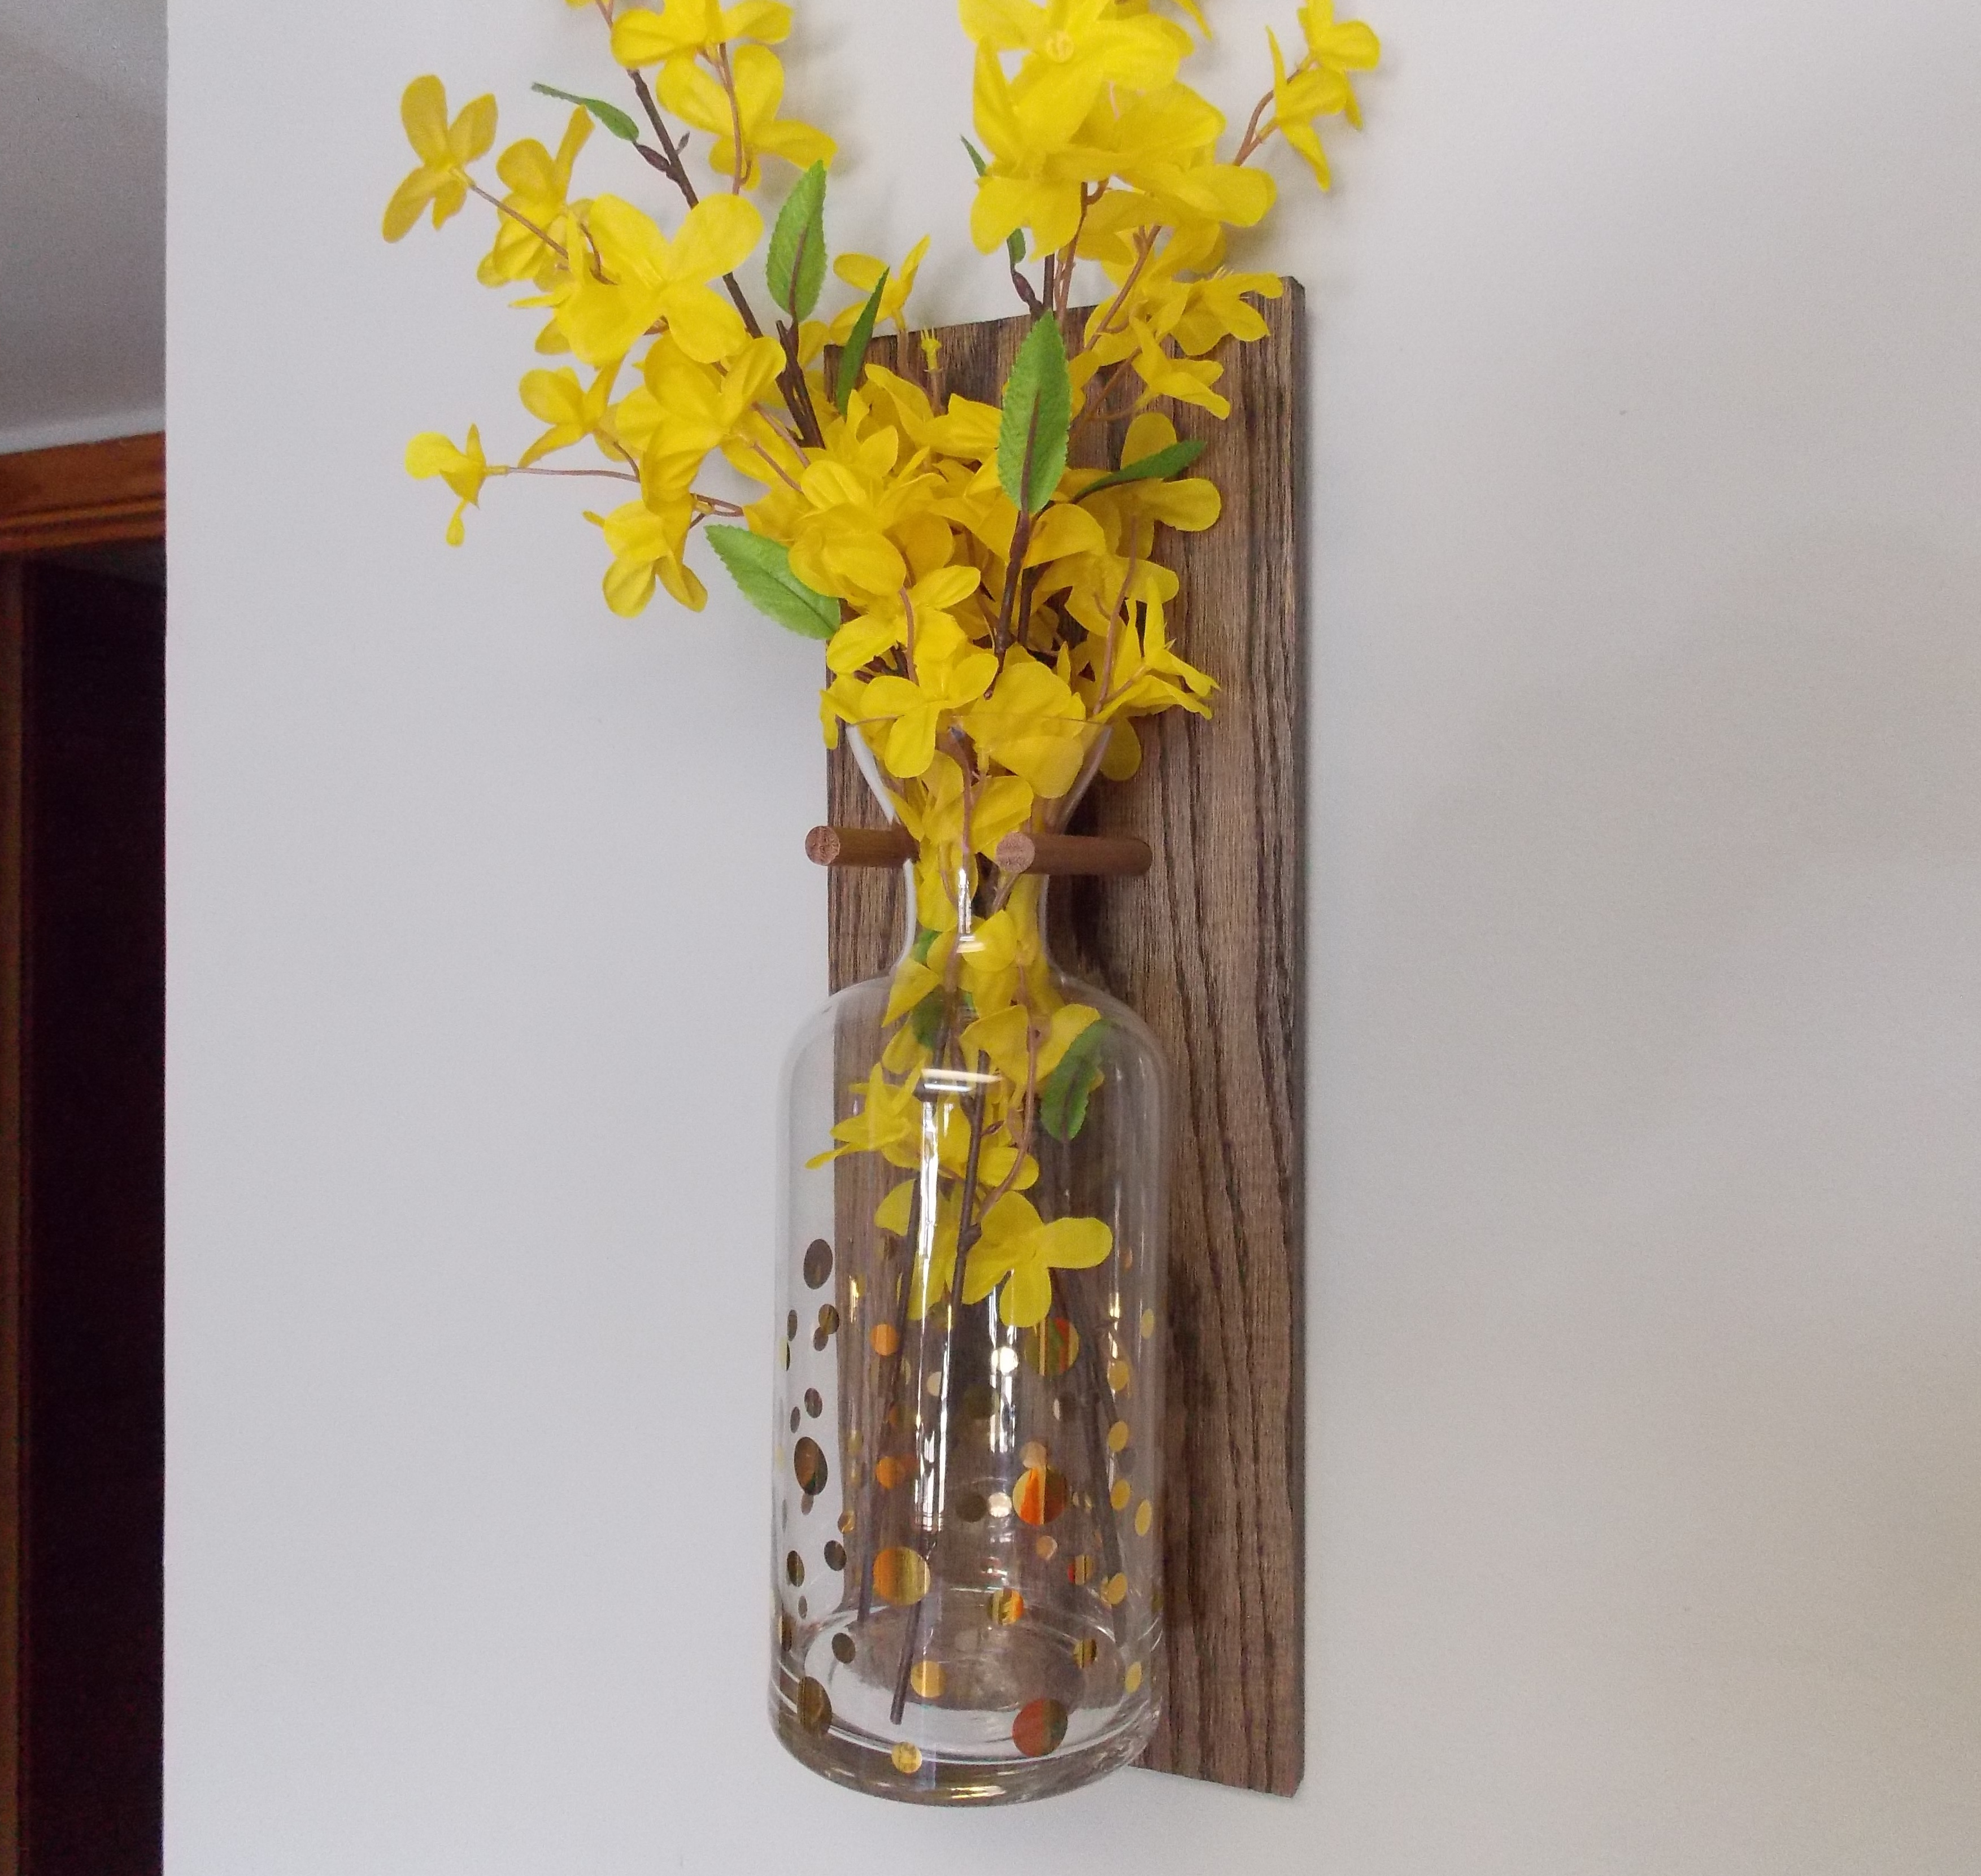 Add color to any room with these hanging vases minwax blog as for my two holes and the dowels they were precisely placed to allow me to slip the neck of this tall glass vase between them reviewsmspy